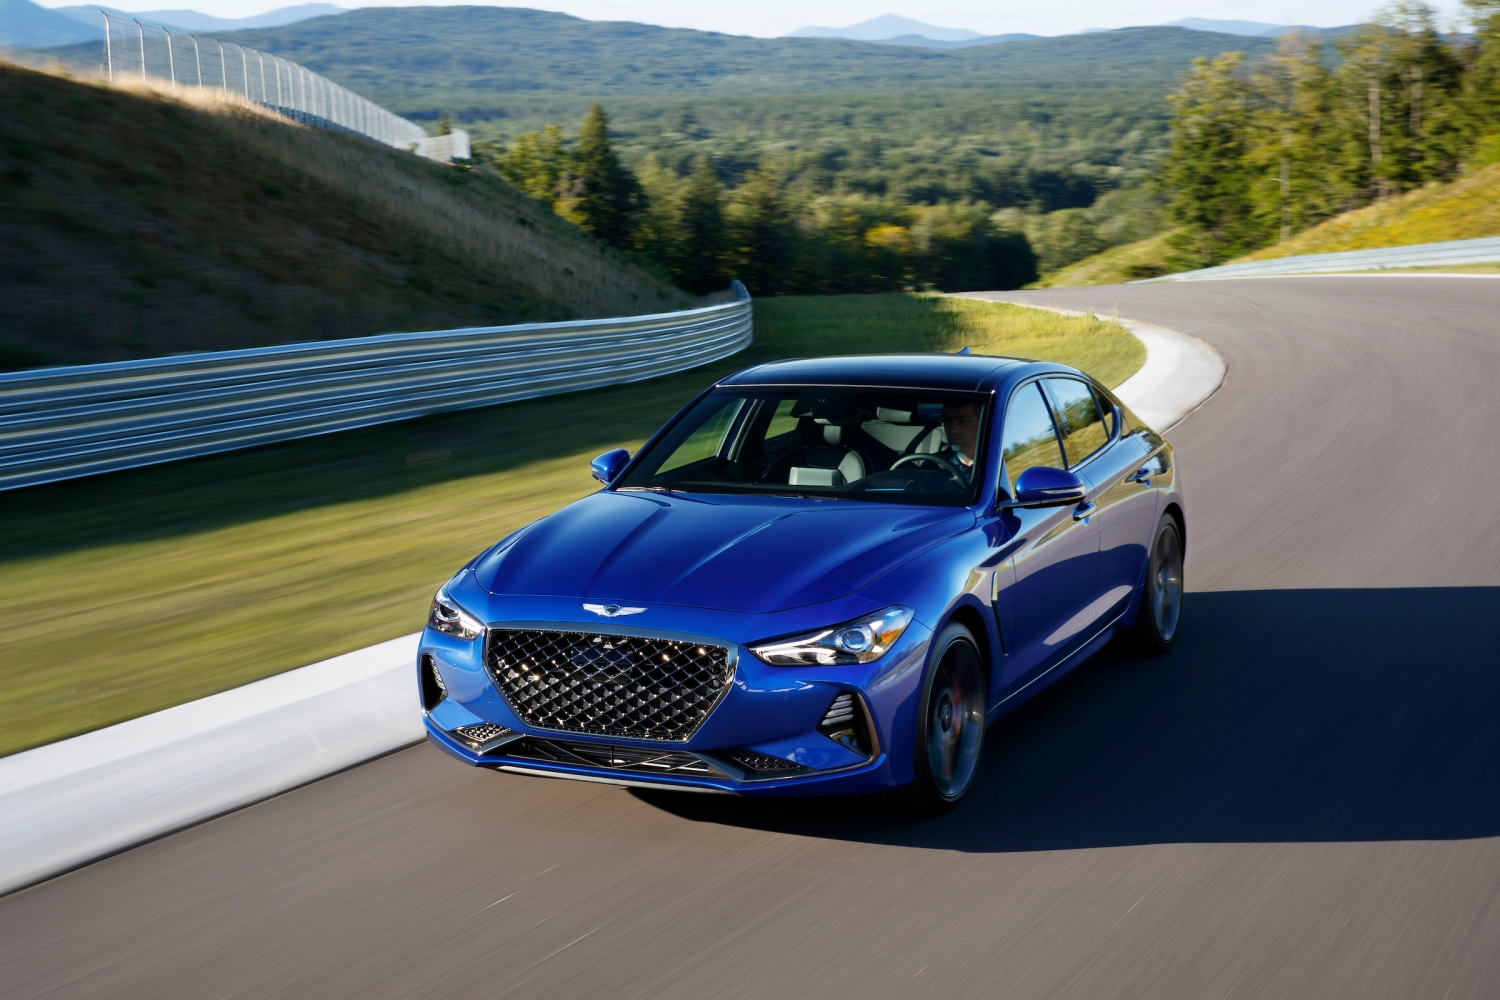 2019 Genesis G70 blue on track high 3/4